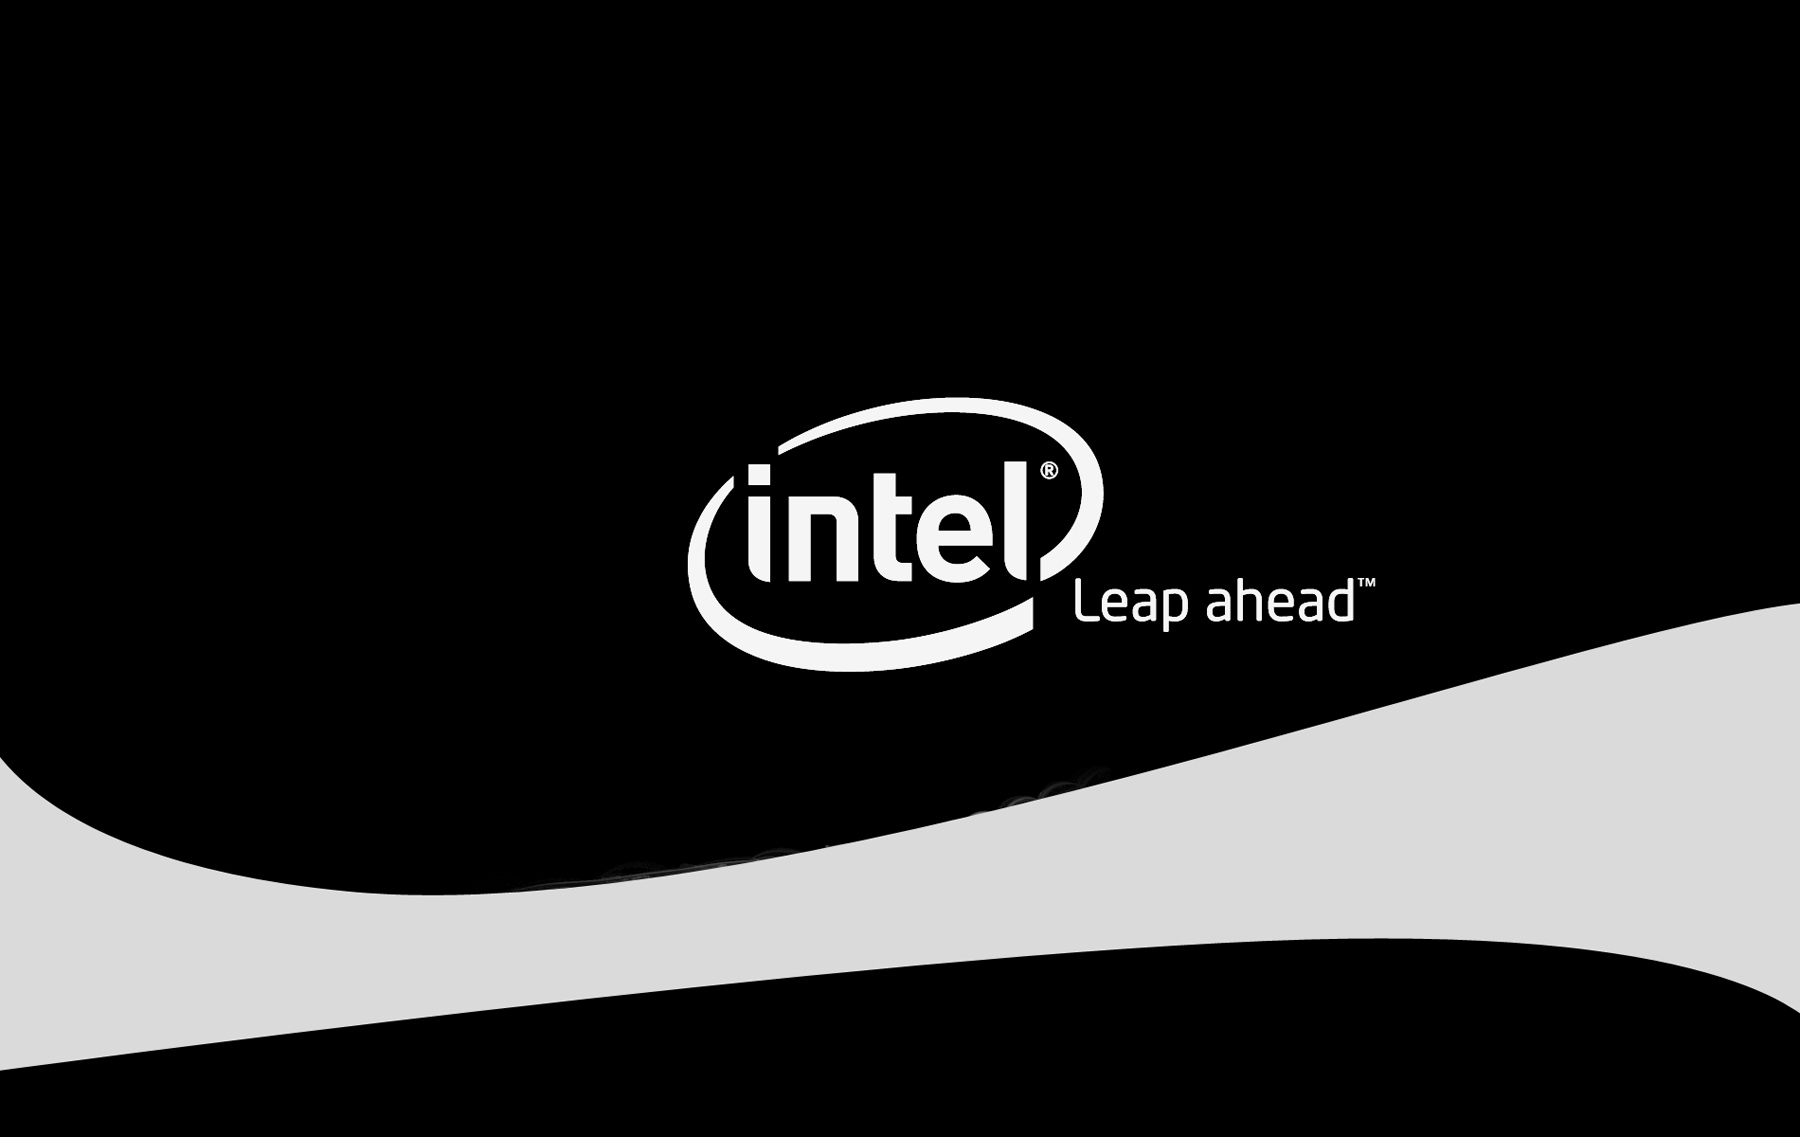 Intel Logo Wallpapers   Daily Backgrounds in HD 1800x1137